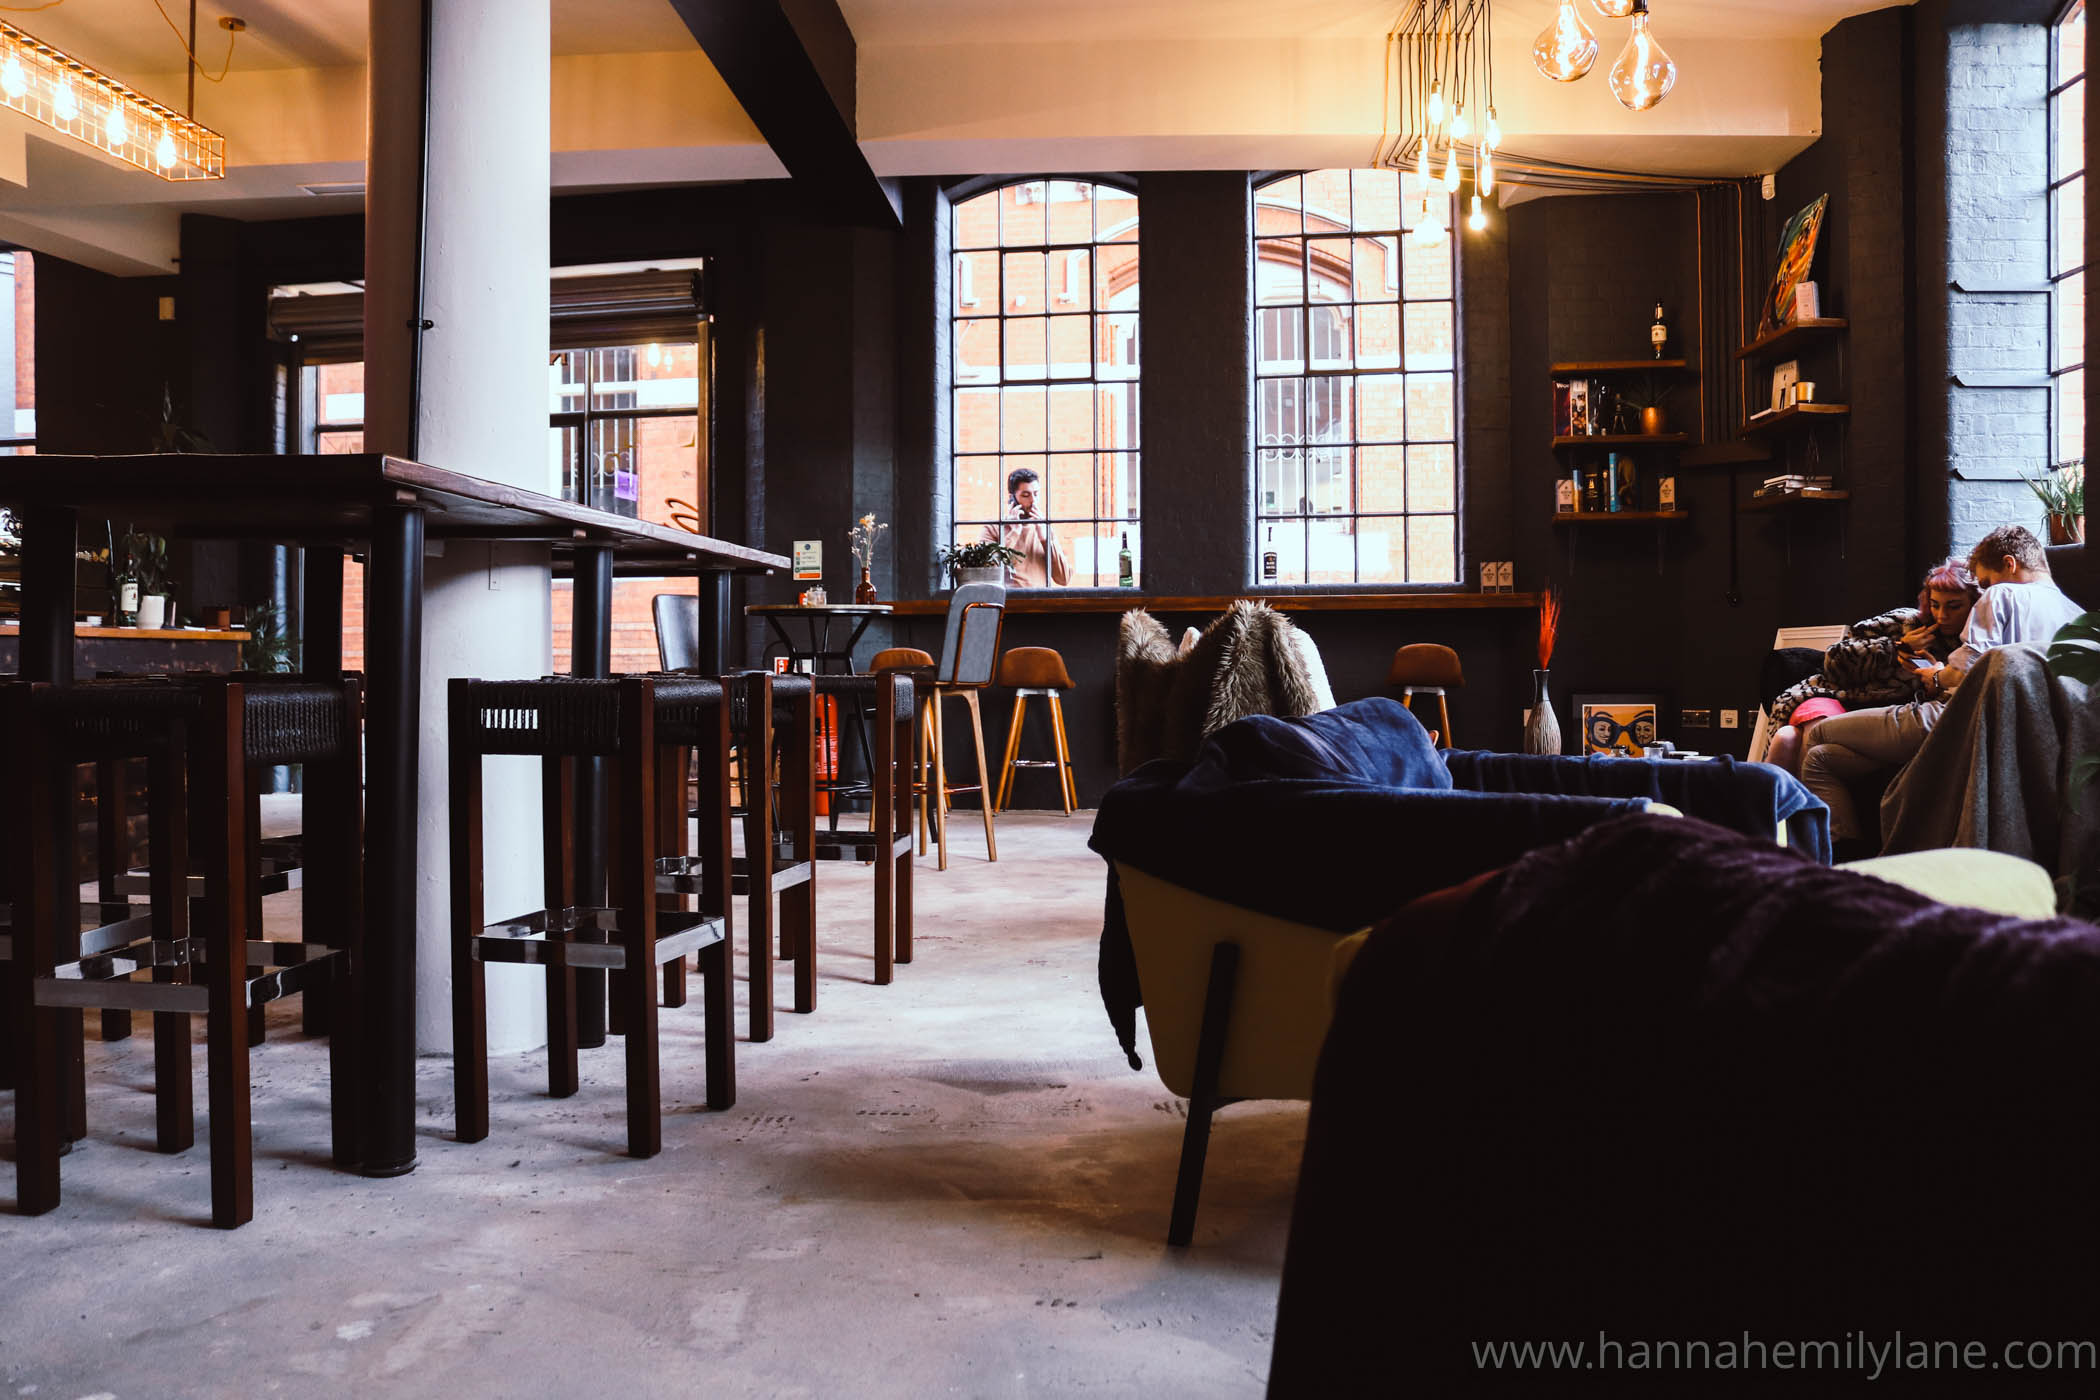 Alternative Birmingham City Guide  | www.hannahemilylane.com